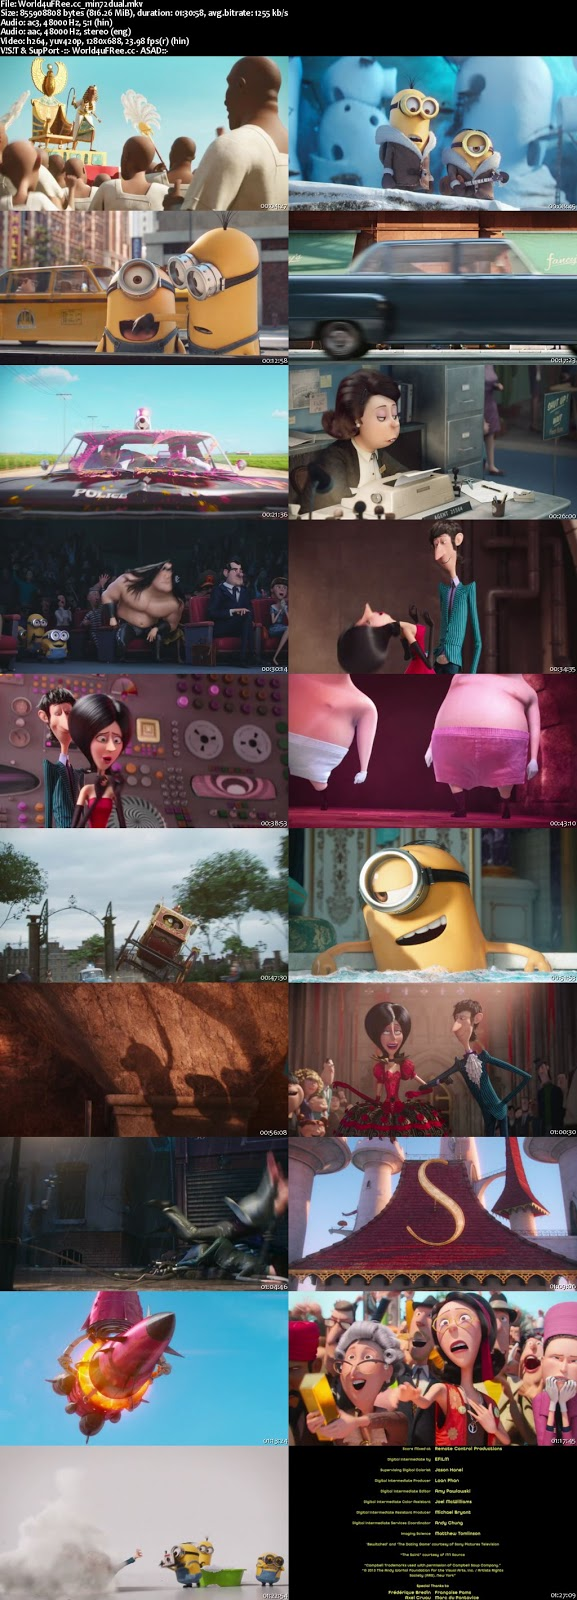 Minions 2015 Hindi 5.1ch Dual Audio BRRip 720p 800mb ESub https://world4ufree.ws